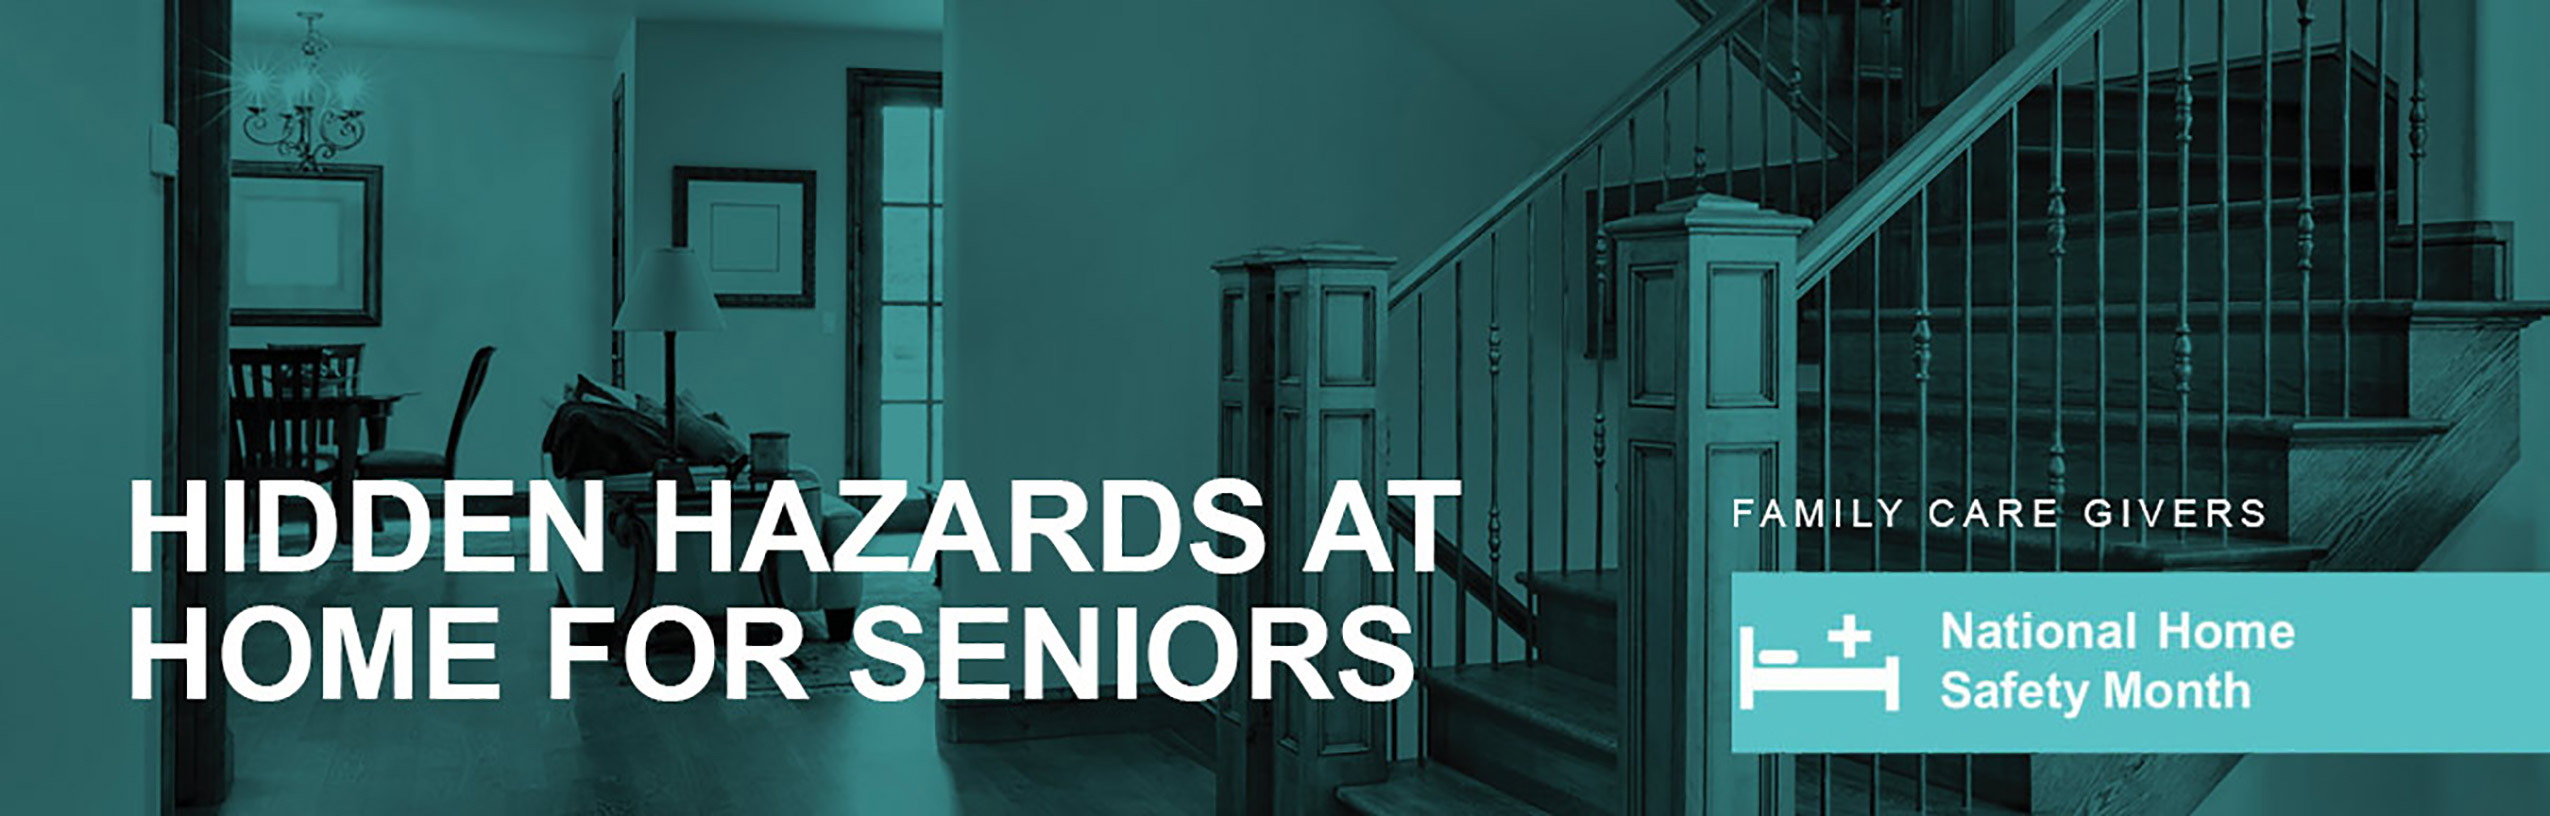 Helpful Home Care info about hidden hazards for seniors